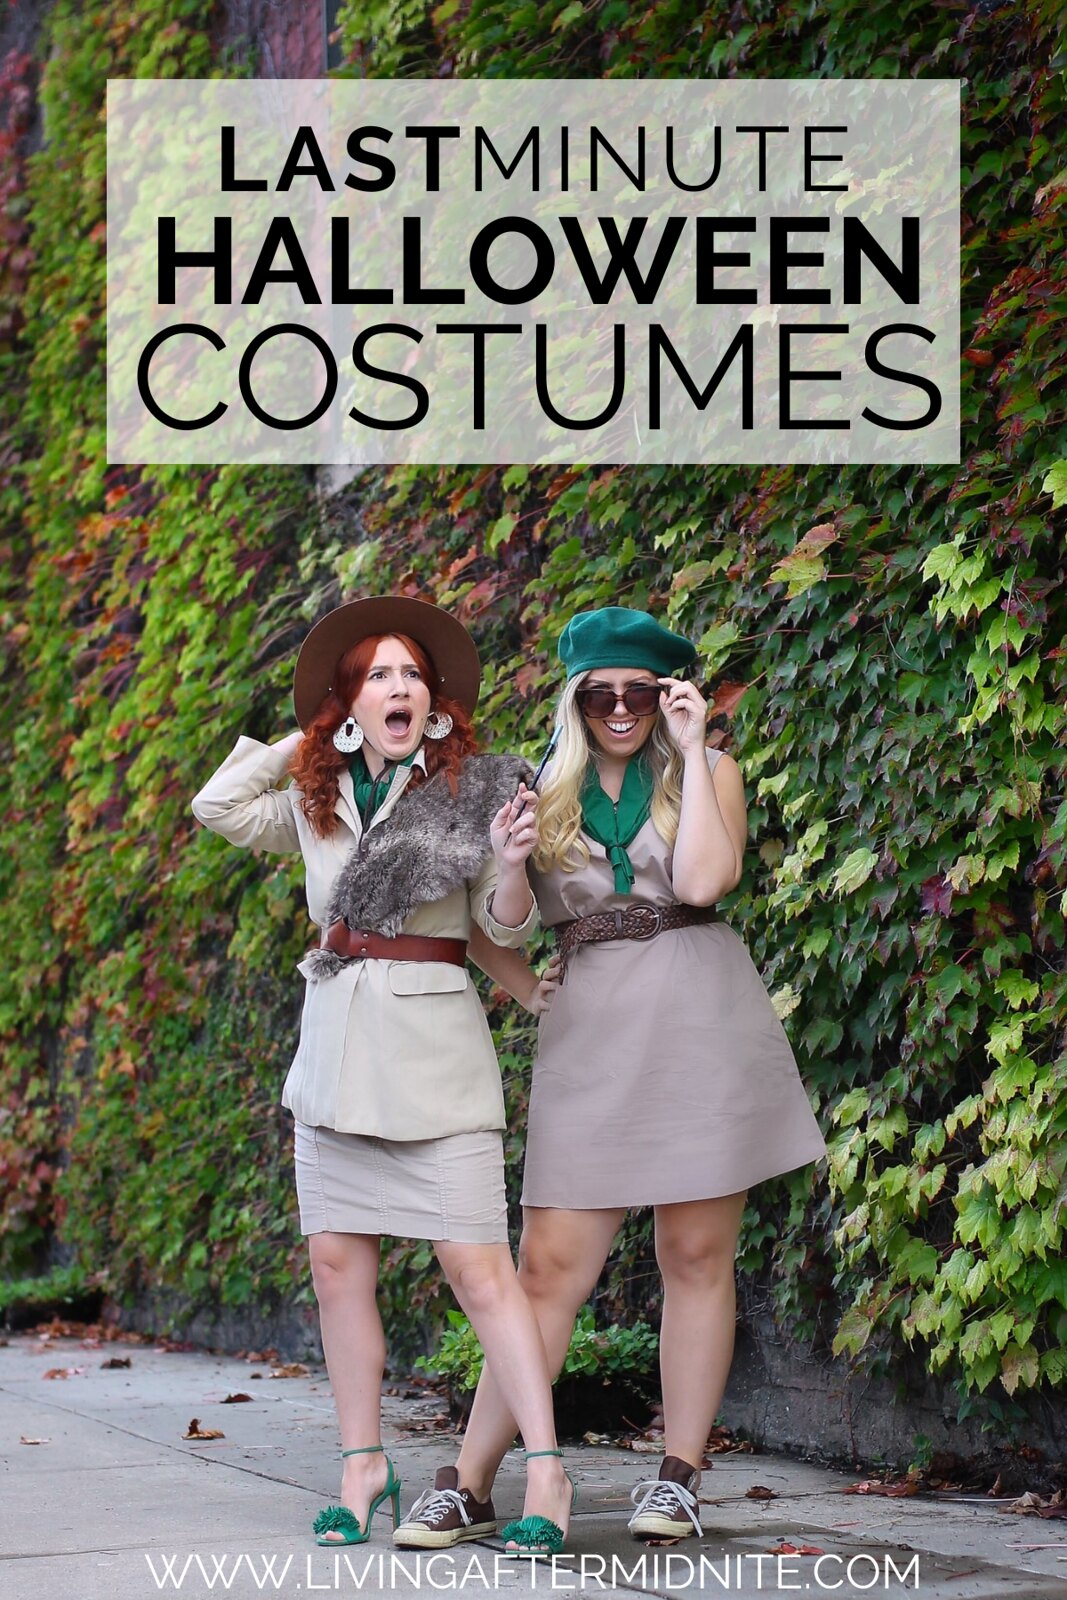 10 Last Minute Halloween Costumes You Can Amazon Prime | The Best Last Minute Halloween Costume Ideas | What to be for Halloween | Adult Halloween Costumes